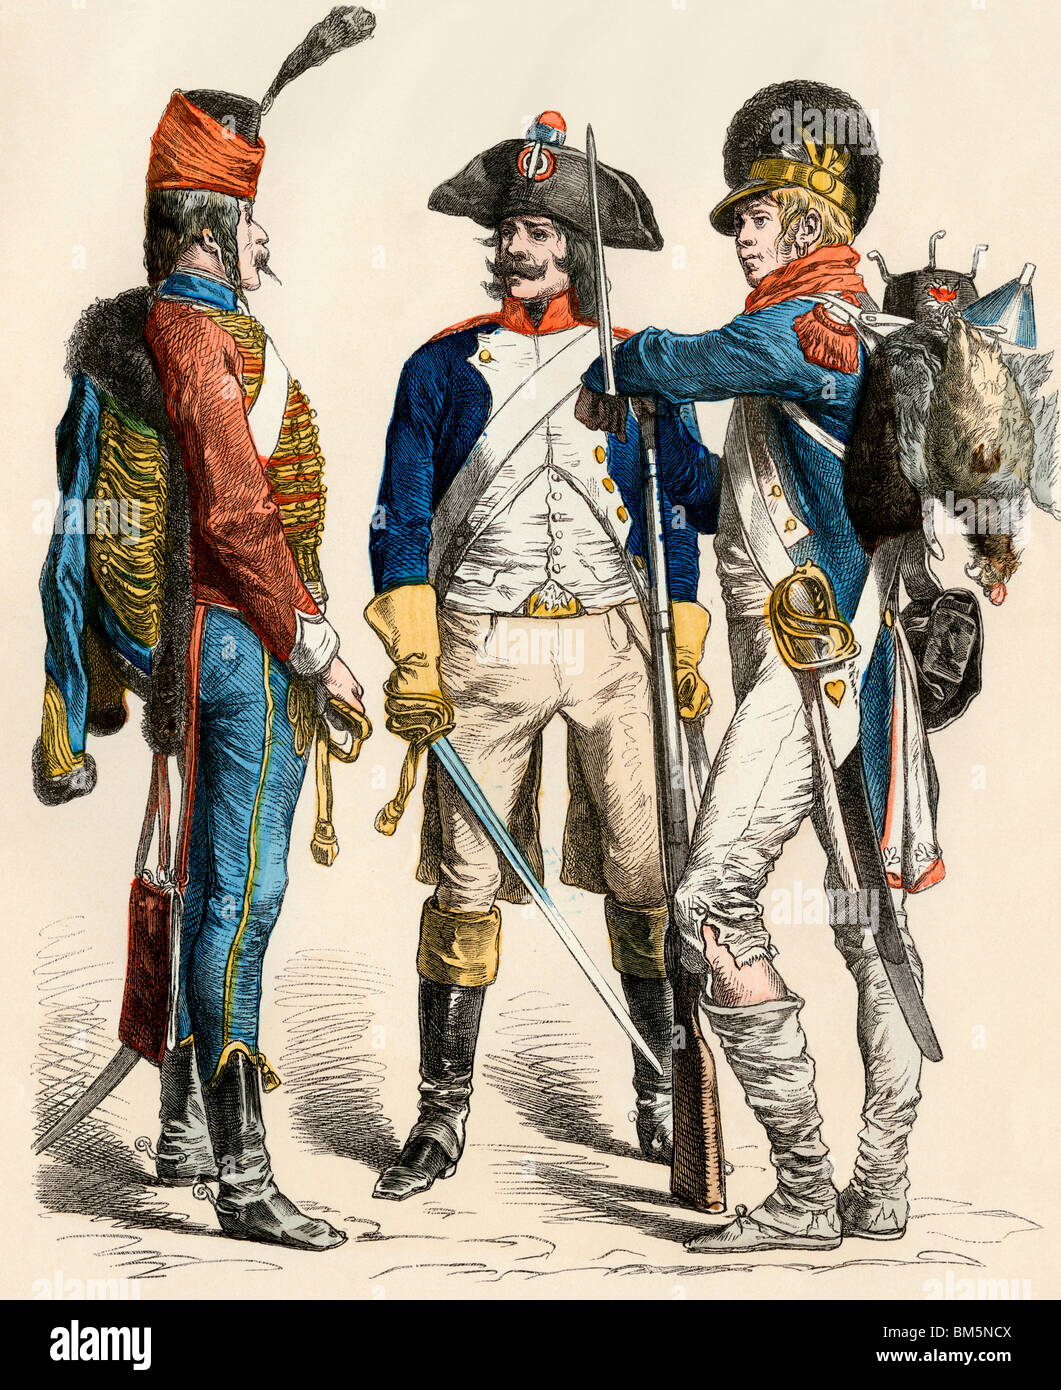 French hussar, cavalry, and infantry uniforms, 1795-1796. Hand-colored print - Stock Image